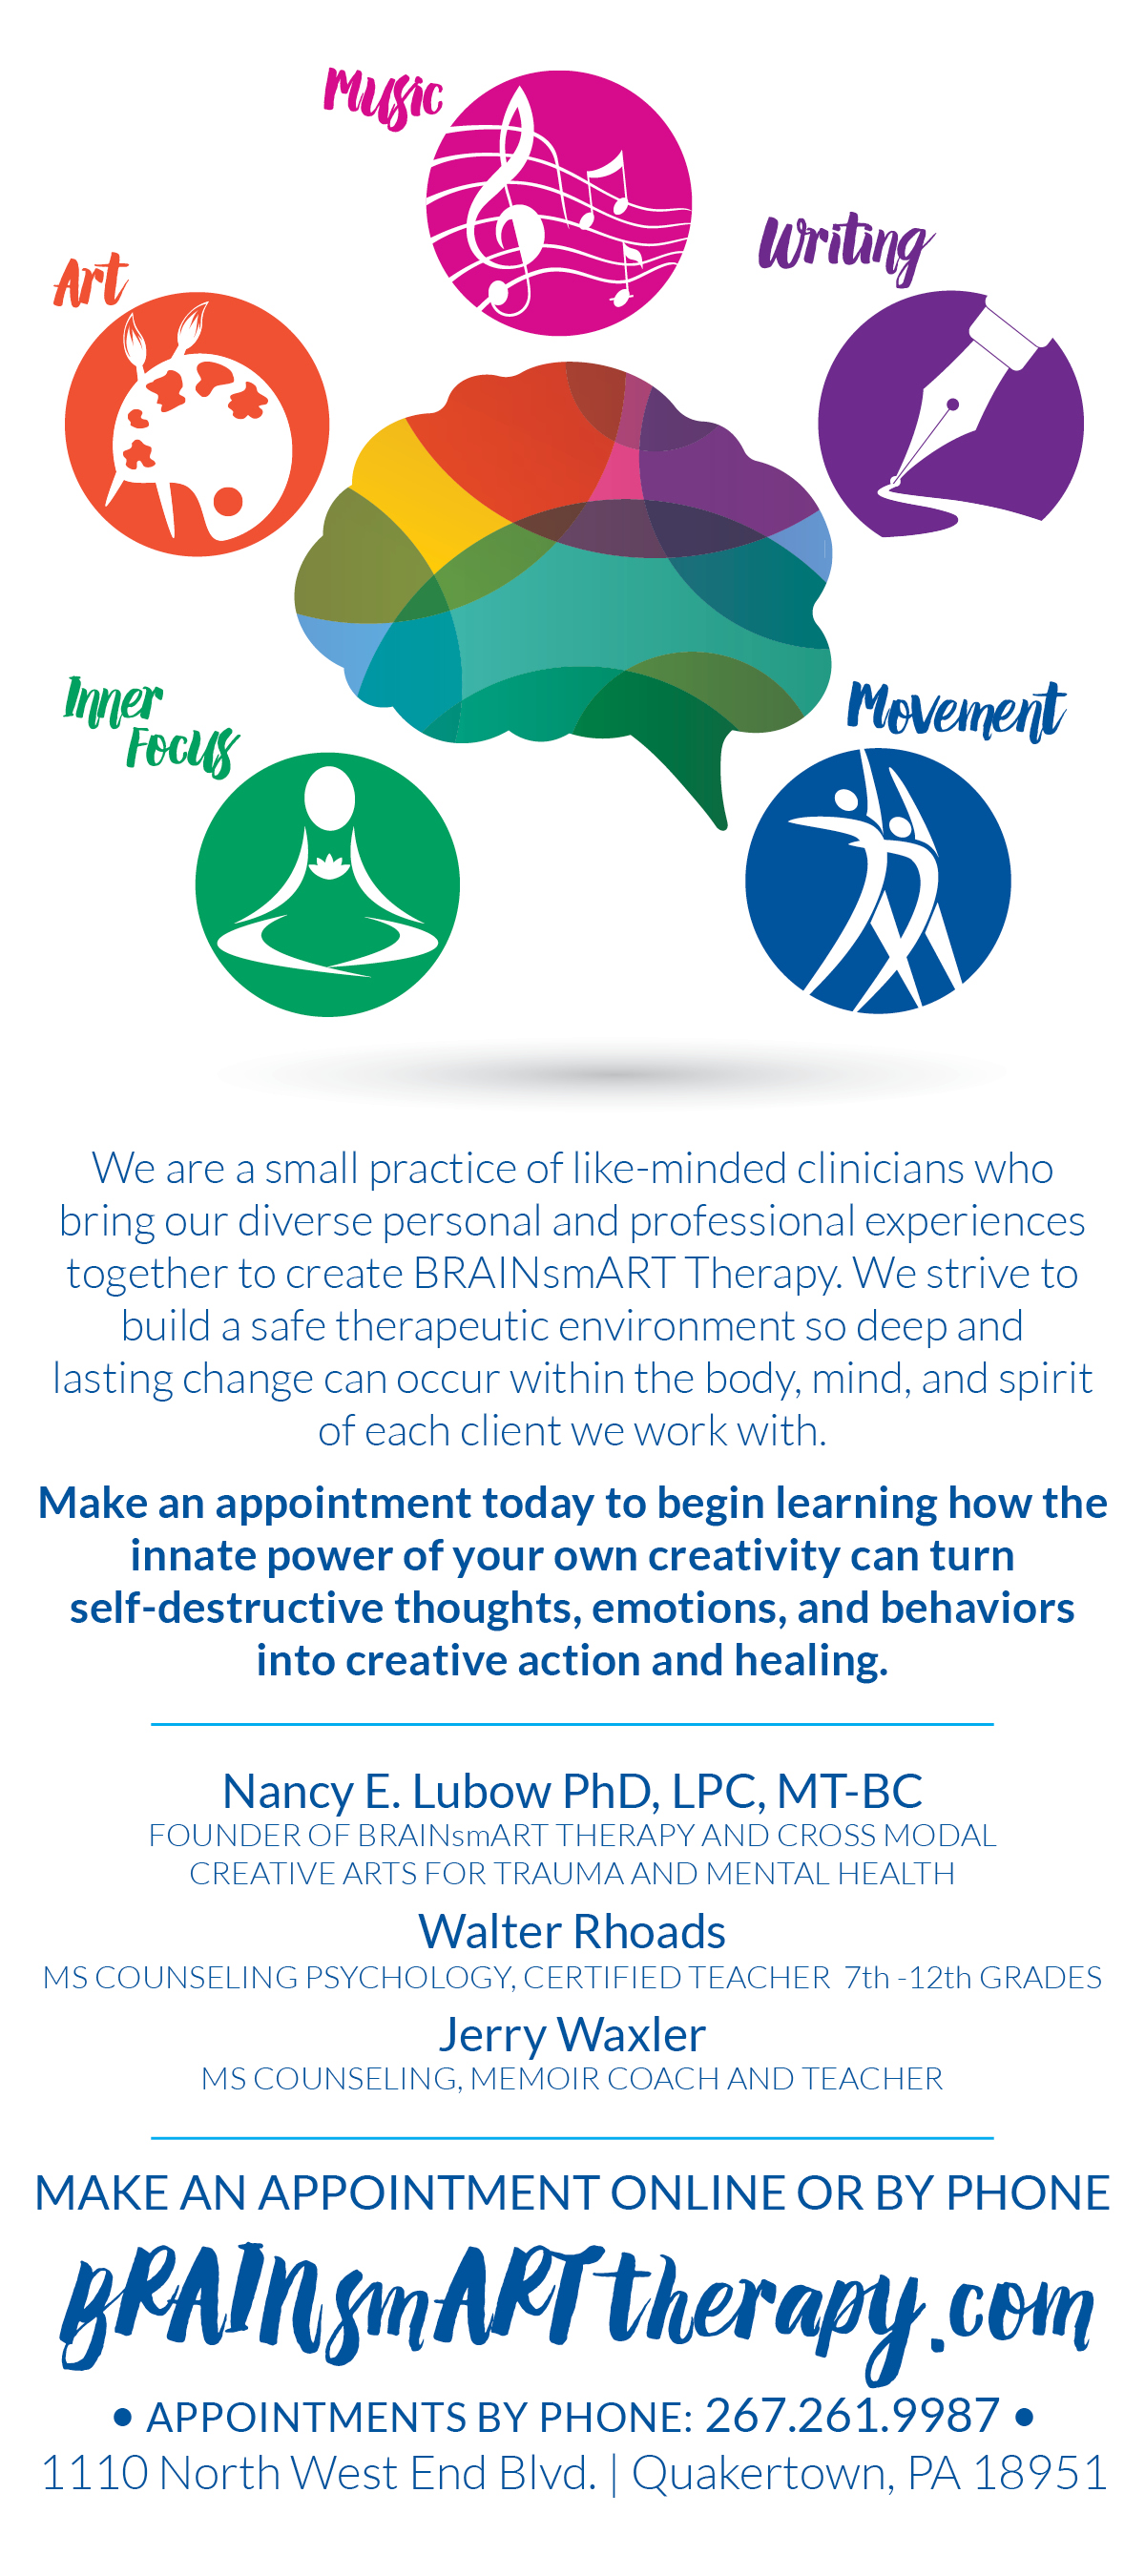 BRAINSMART THERAPY • 4 x 9 RACK CARD  CLIENT: BRAINSMART THERAPY WORK: Adobe InDesign + Illustrator. Co-wrote copy with Nancy Lubow PhD, LPC, MT-BC Logo Design by Kat  Moyer Media  + Design